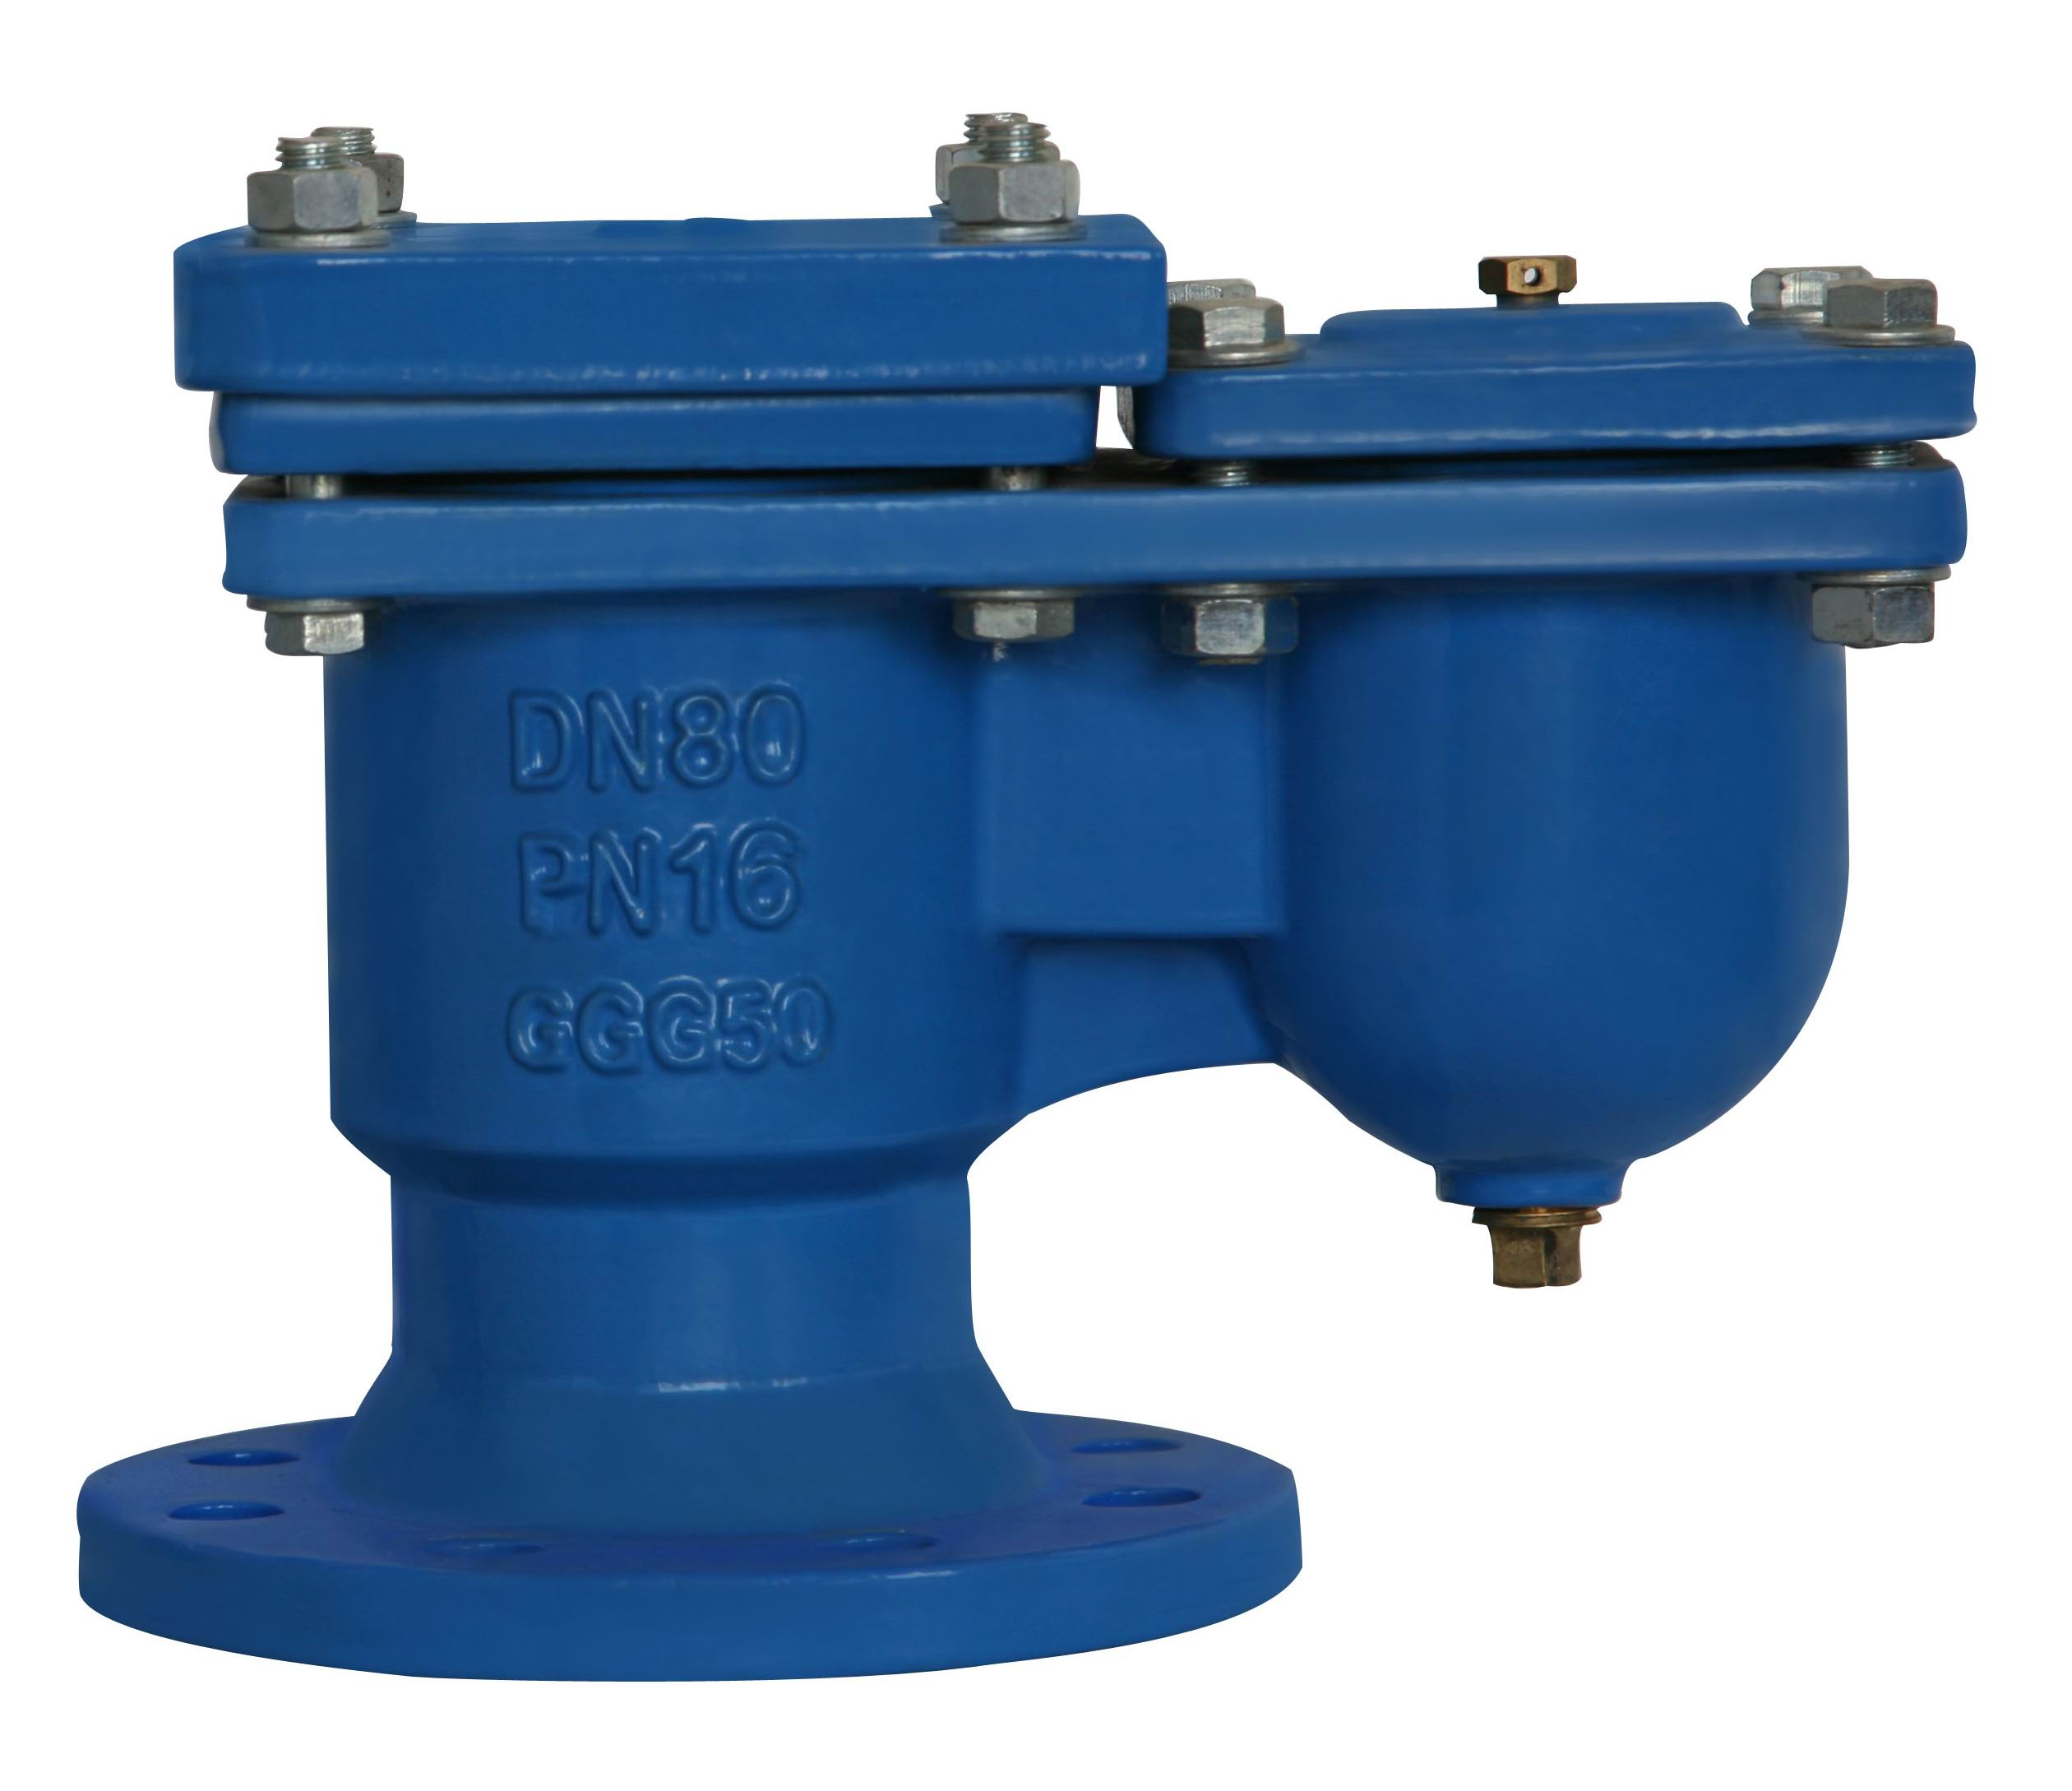 Double orifice Automatic Air Valves, Flanged mwisho